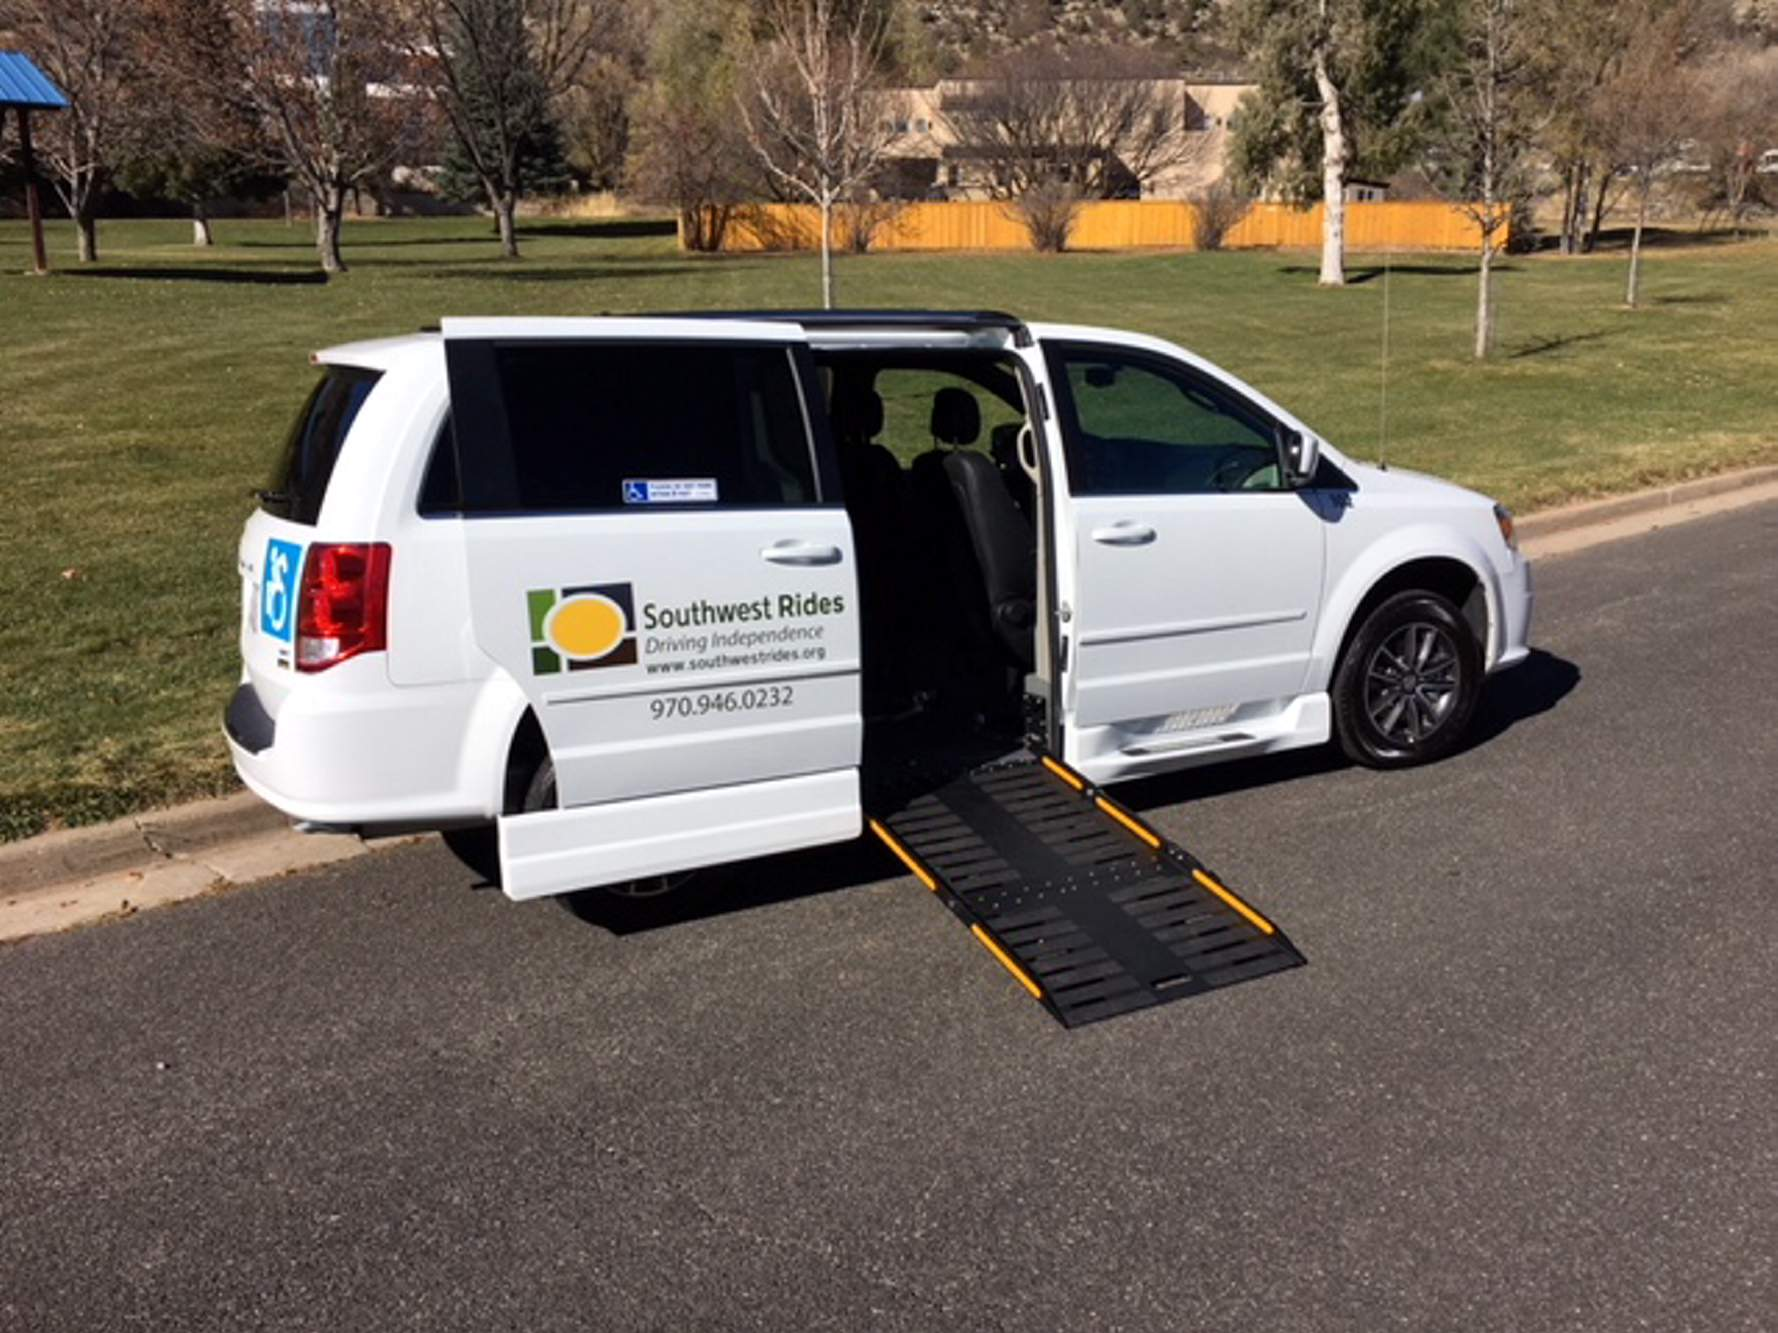 our collect provide be personally friendly to drivers from deliver they and assistance transport clients safely need elderly we caring door where community will disabled can services